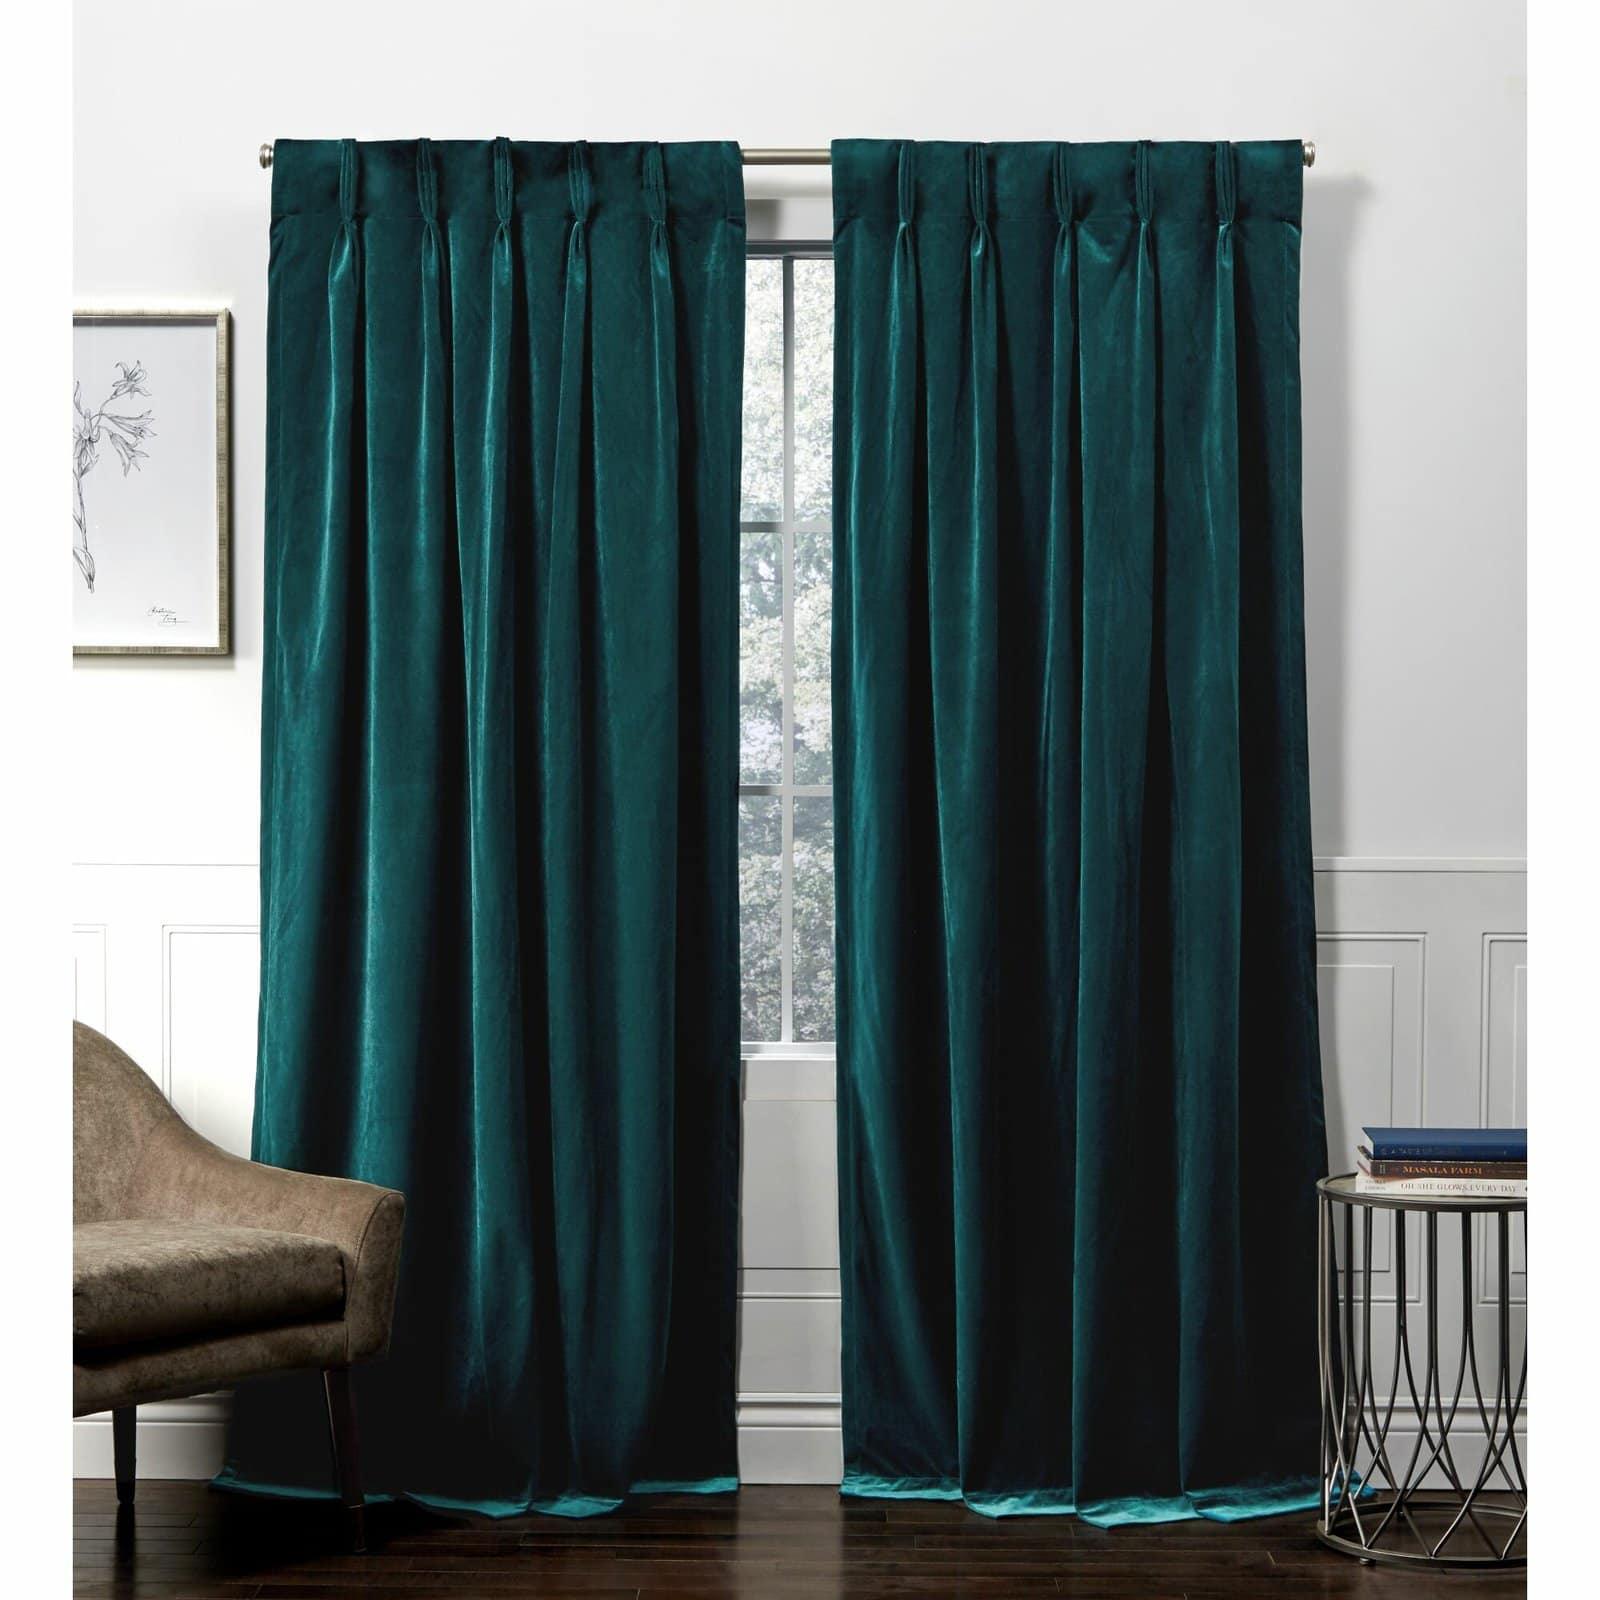 Teal Heavyweight Velvet Curtains